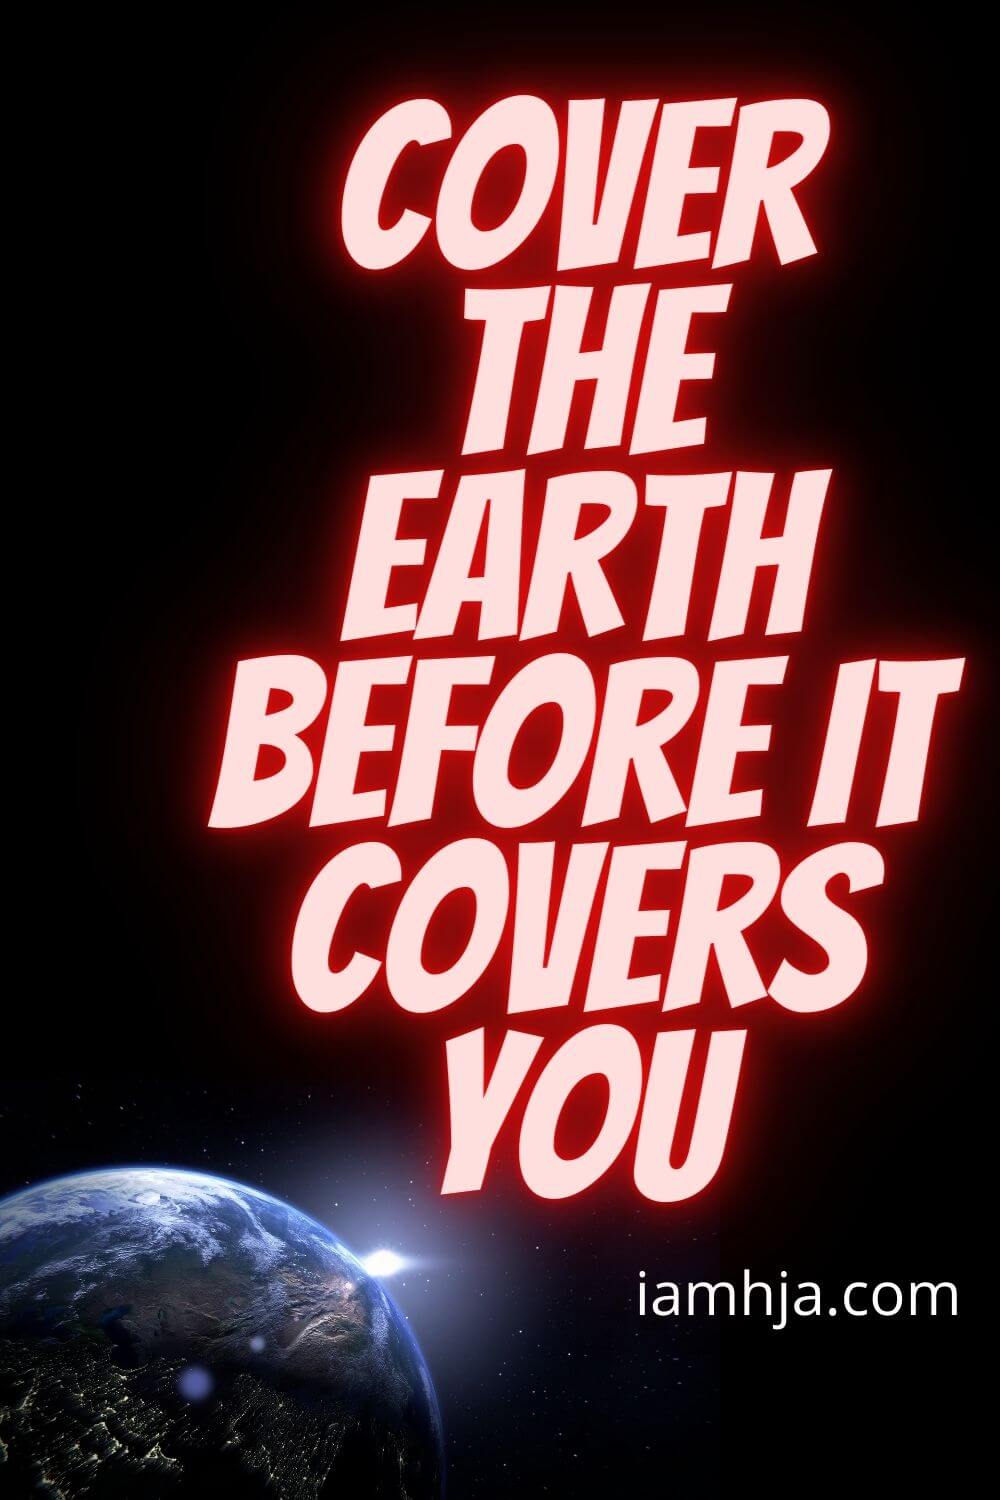 Cover the earth before it covers you